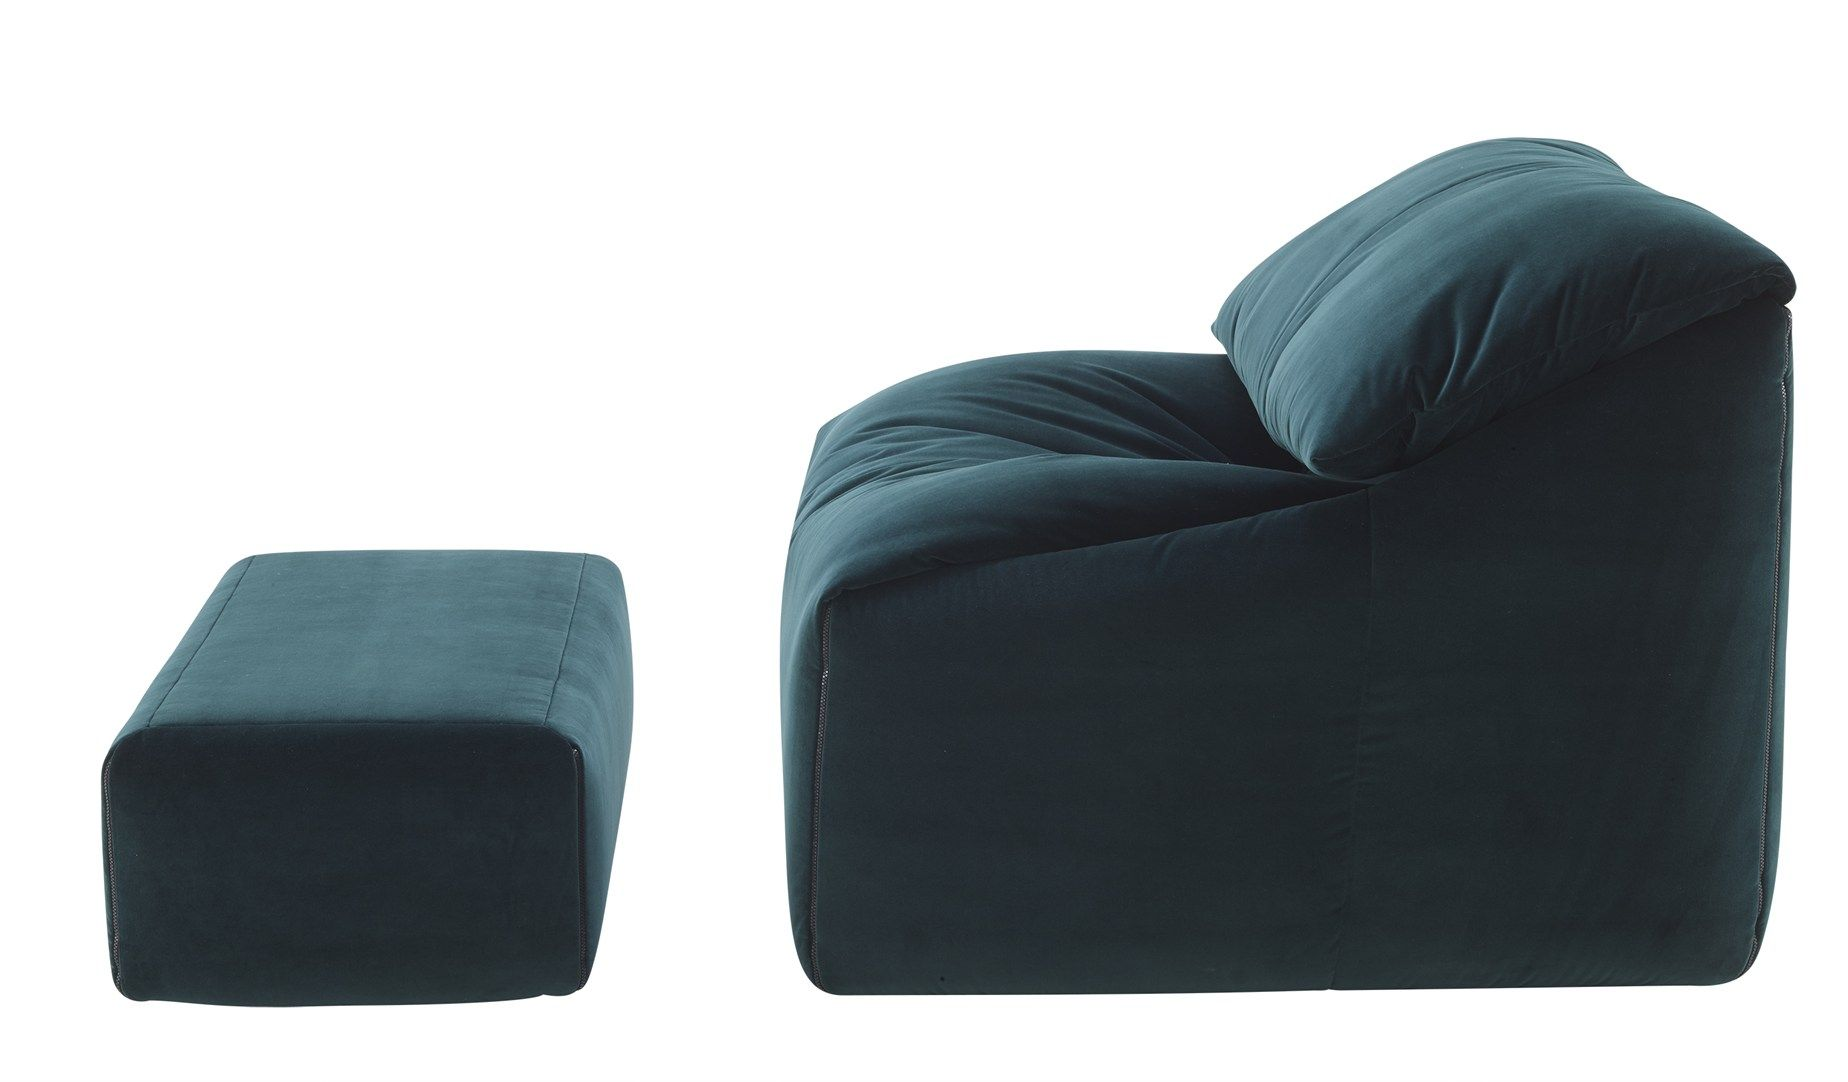 Timeless Design: Plumy Sofa By Annie Hiéronimus For Ligne Roset